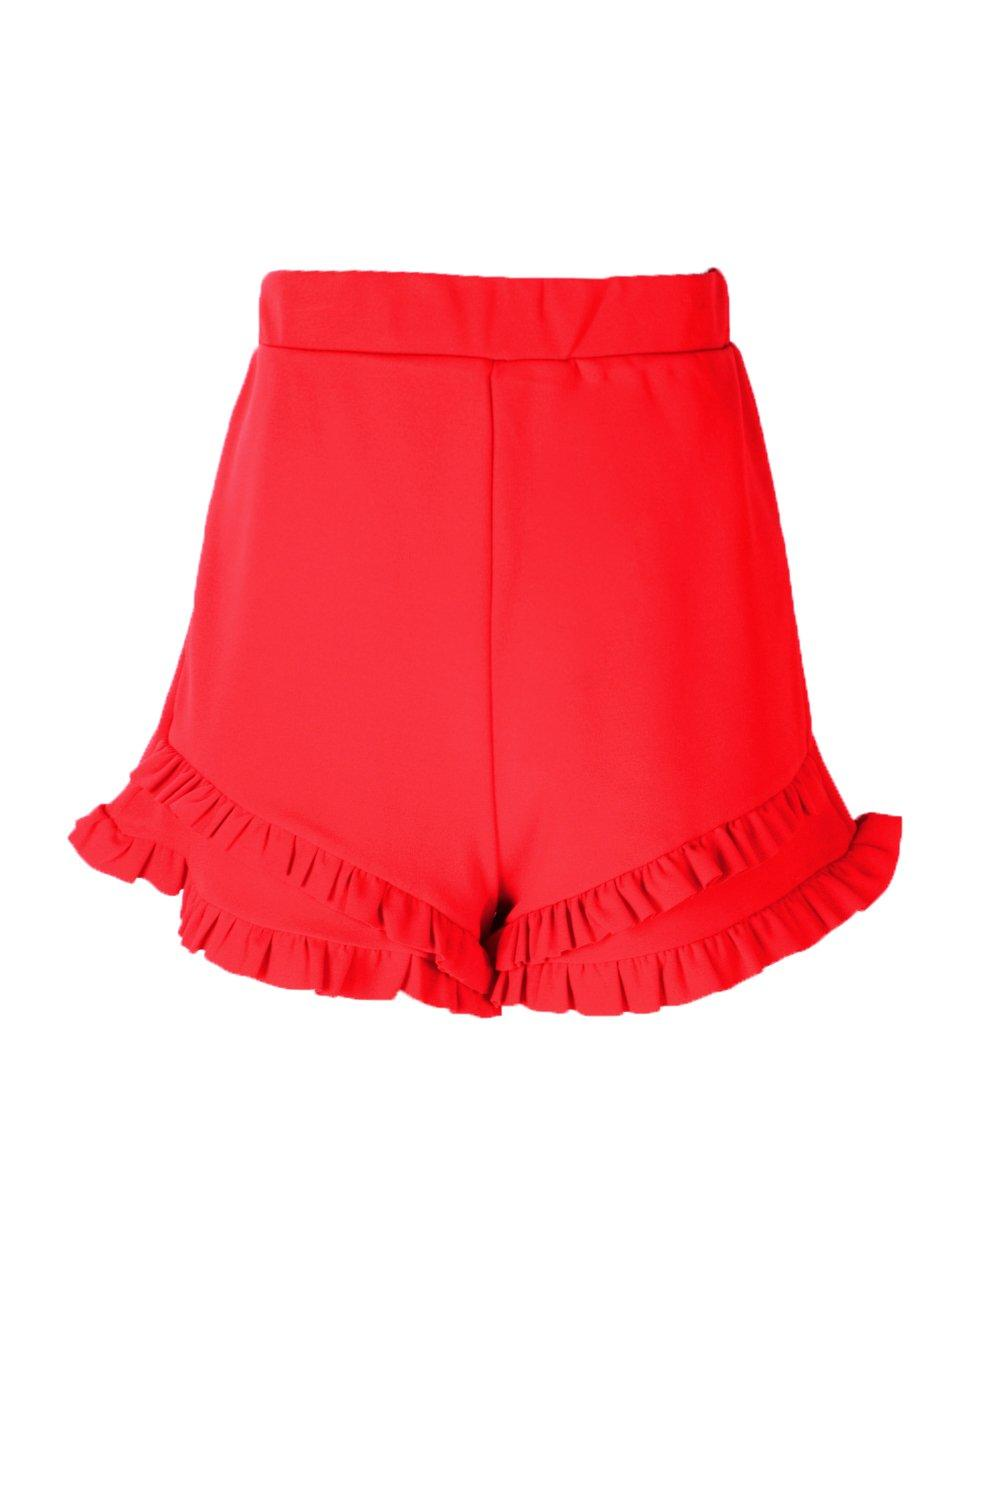 Double Double Frill Frill red Hotpants Hotpants Frill Hem Double Hem red Hem 0qfr0wp